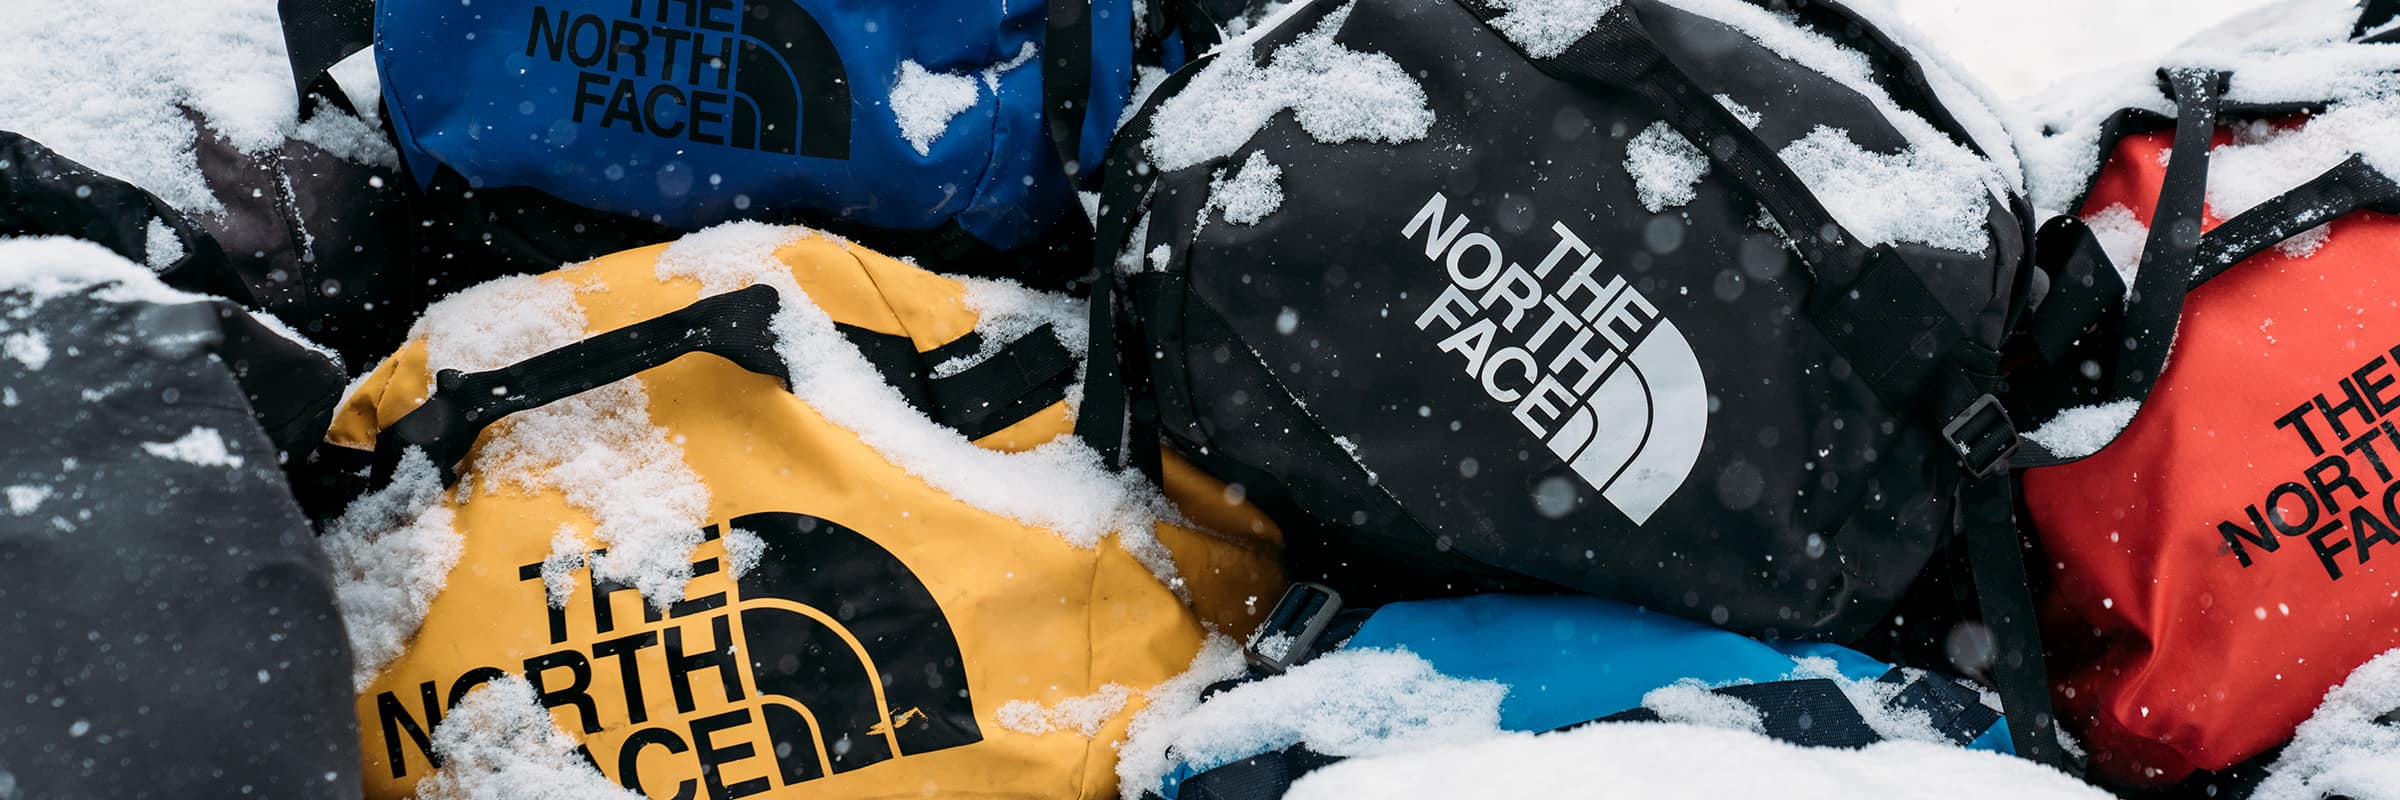 Revue du sac Base camp de The North Face